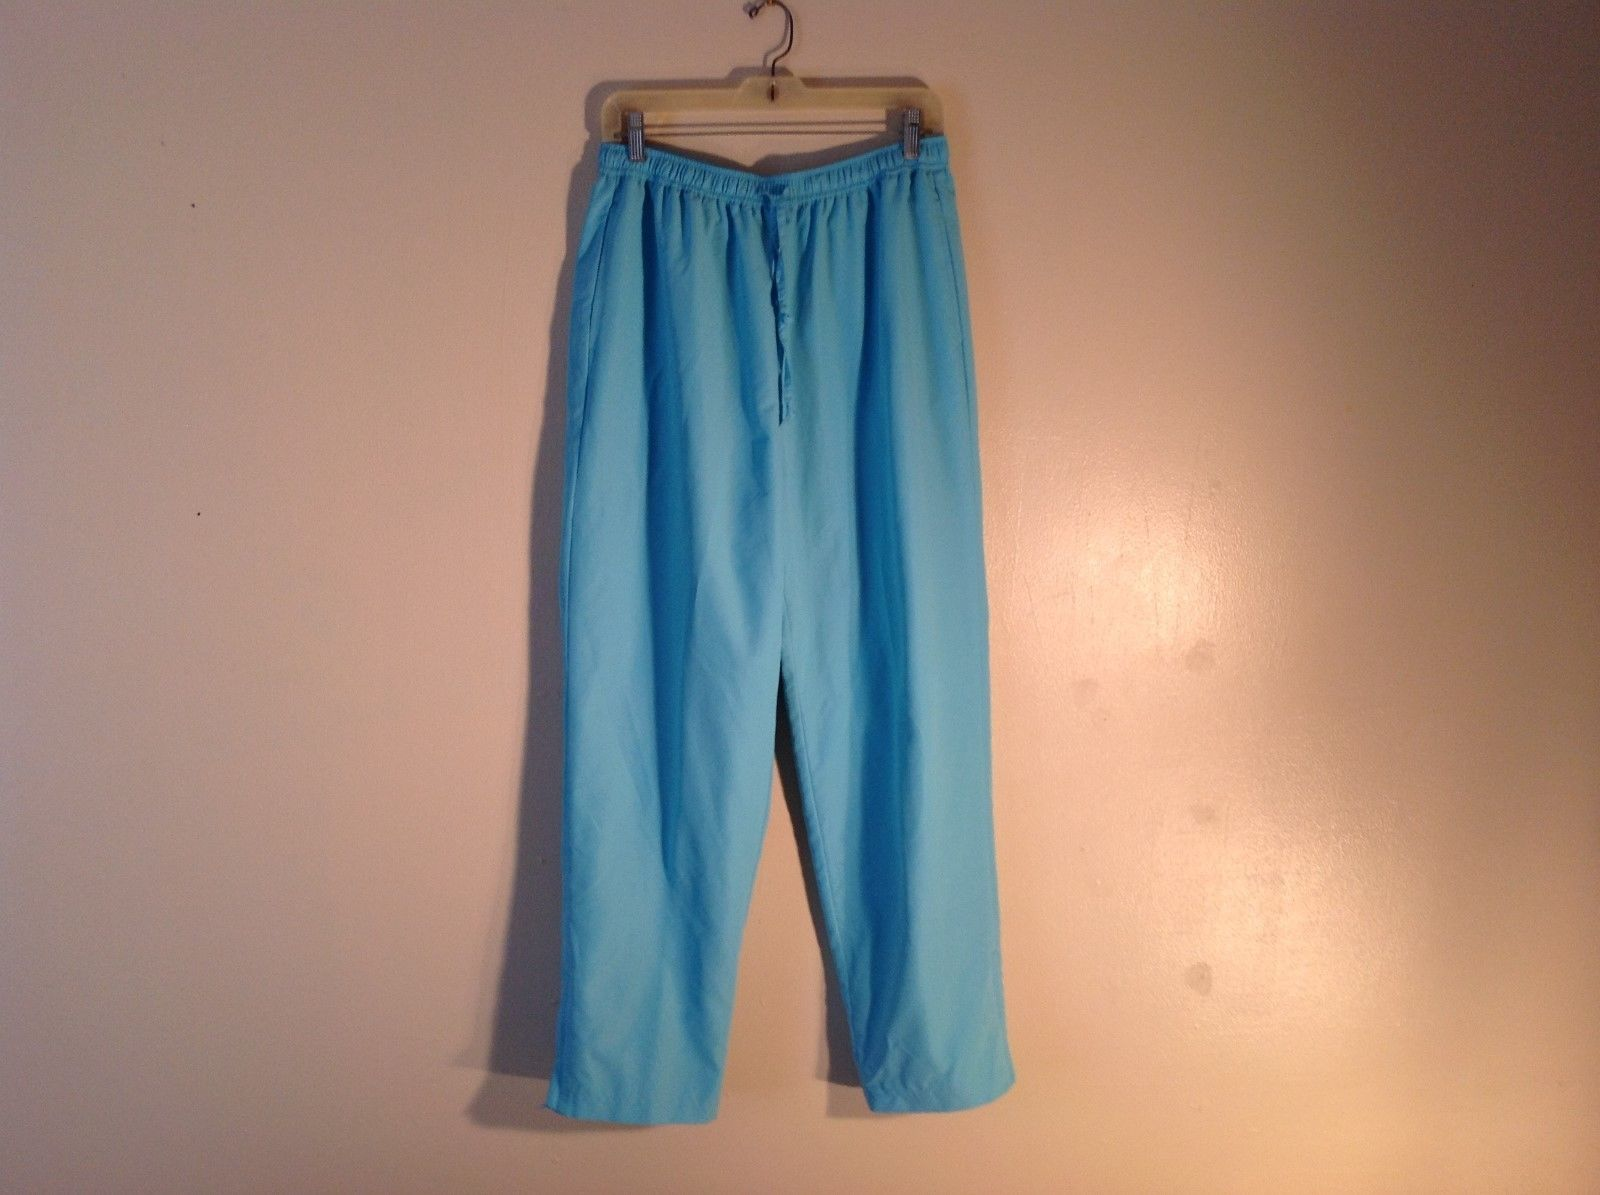 Appleseed's Medium Sky Blue Stretchy Comfortable Pants